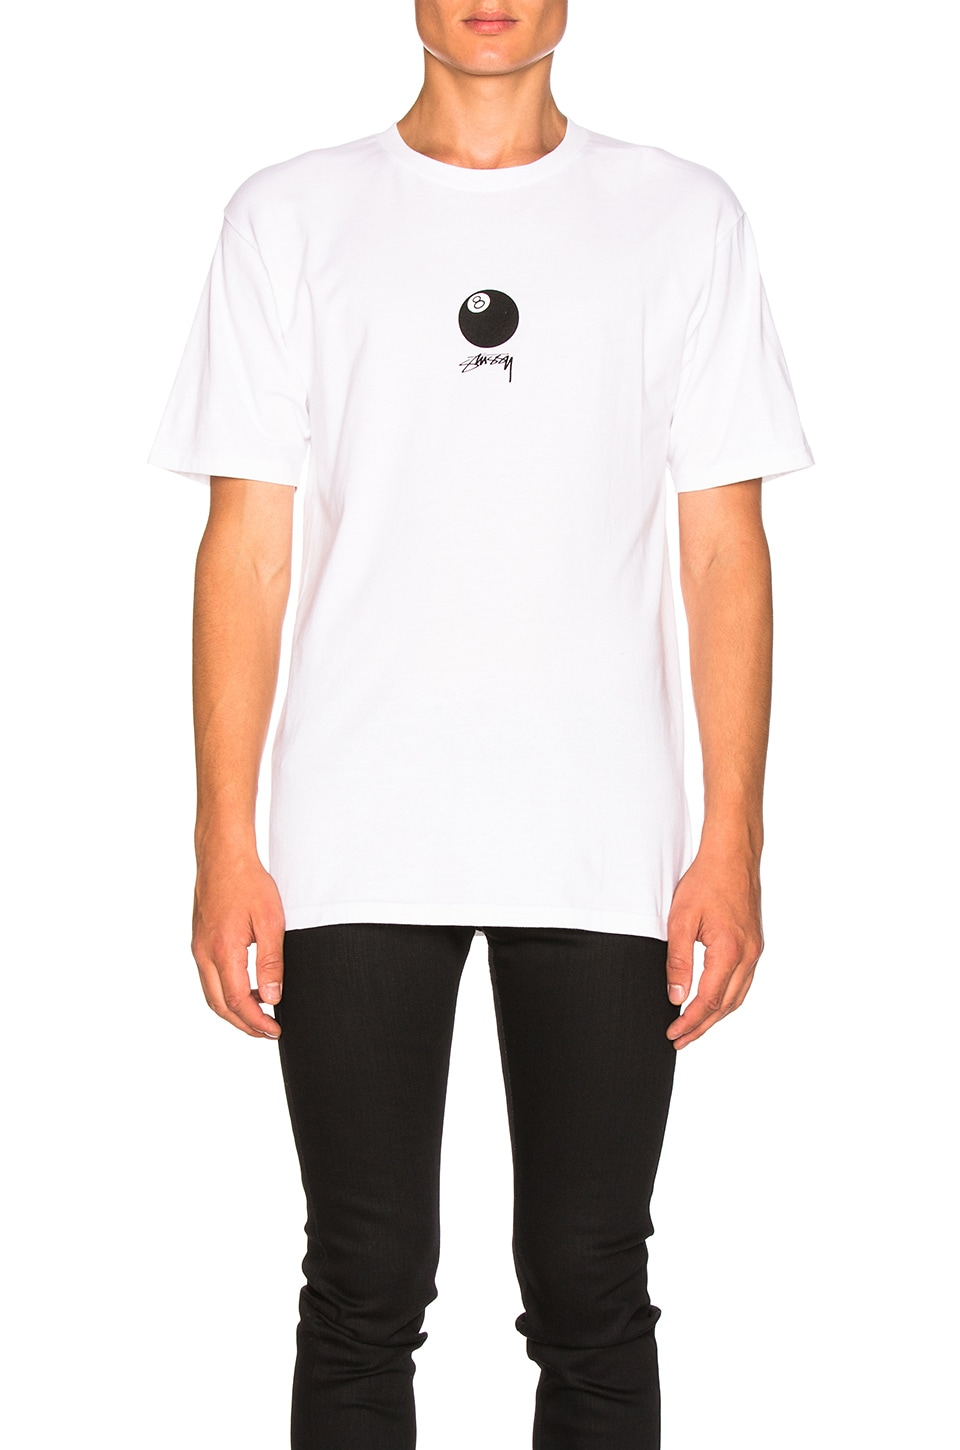 8 Ball Stock Tee by Stussy